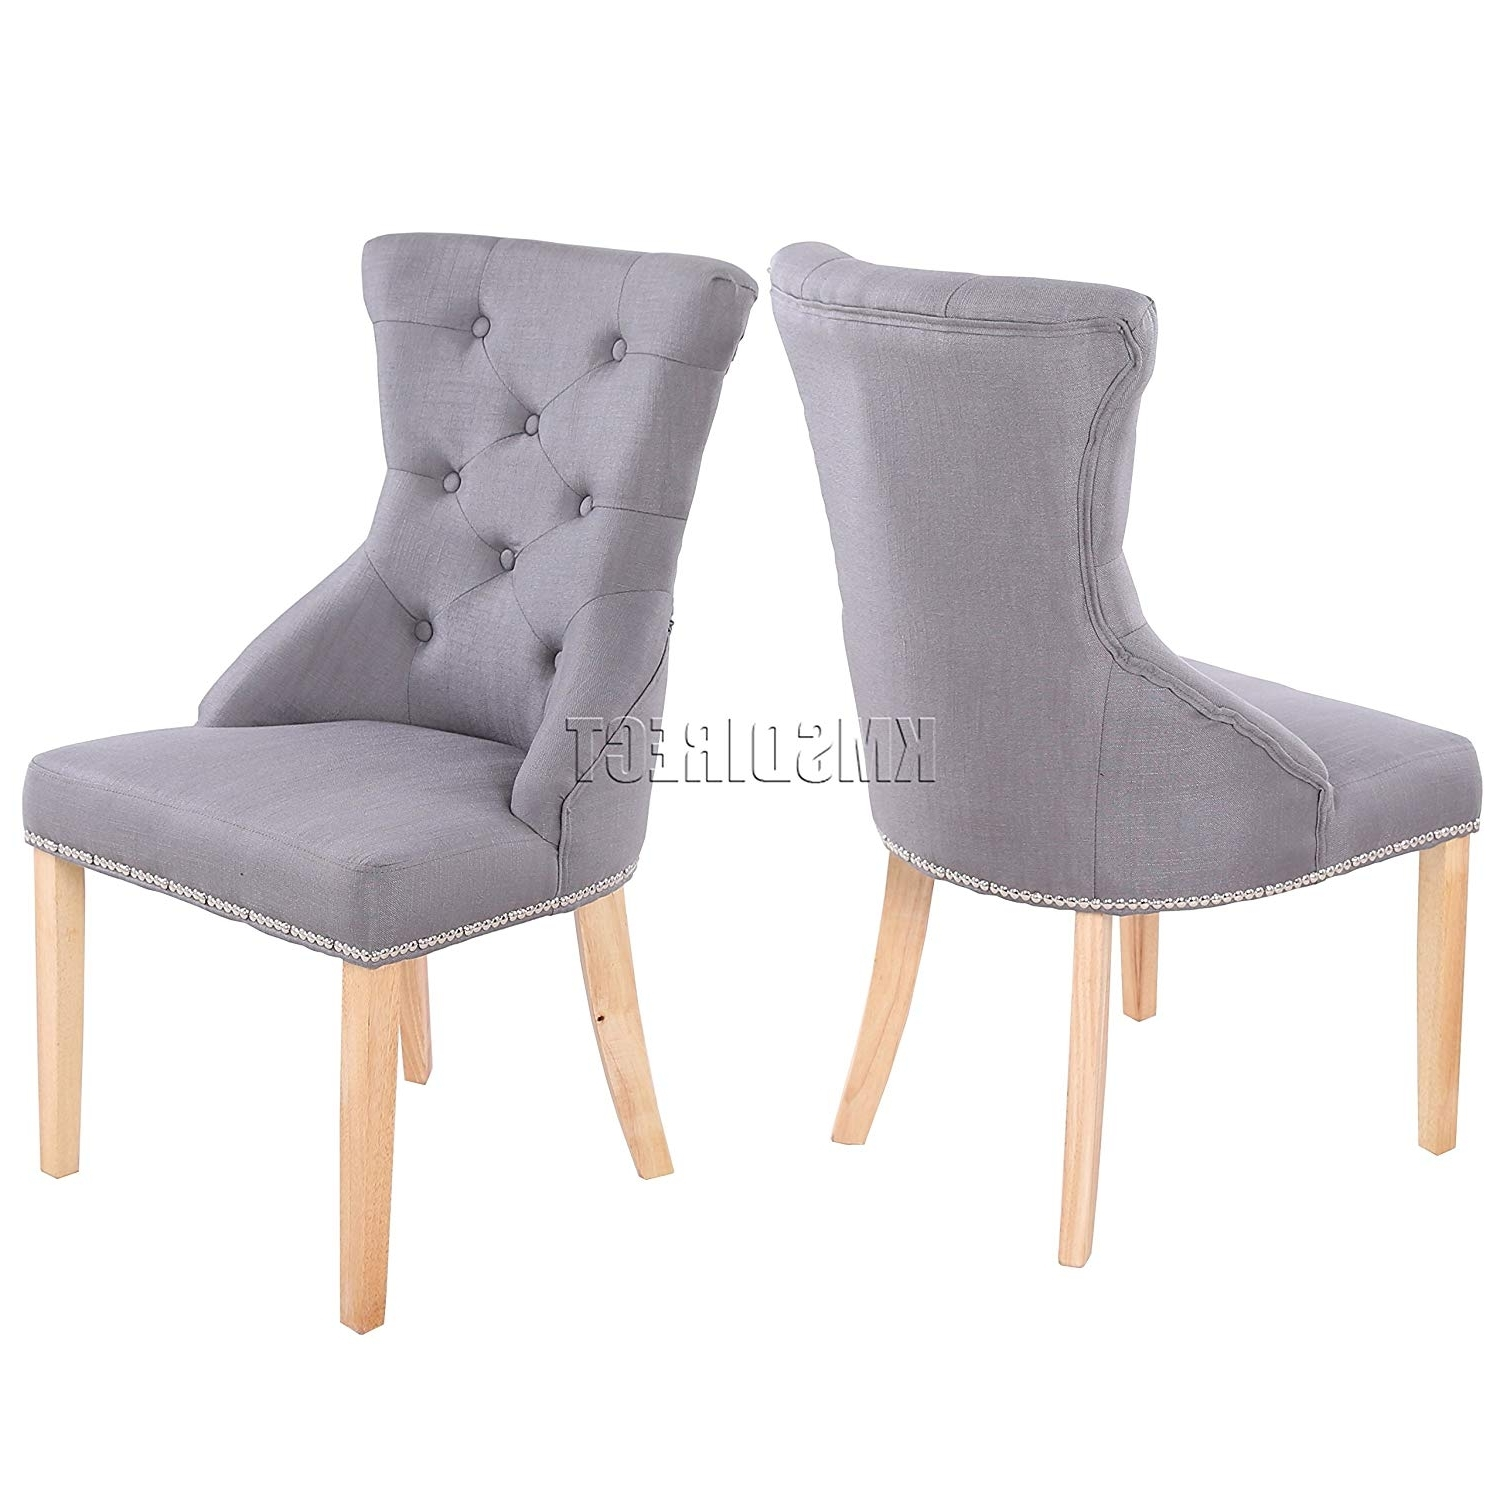 Foxhunter Set Of 2 Fabric Linen Dining Chairs Scoop Button Back Chrome  Studs Office Lounge Seat Dcf05 Grey Furniture Contemporary Modern Look  Please Intended For Famous Fabric Dining Chairs (View 16 of 25)